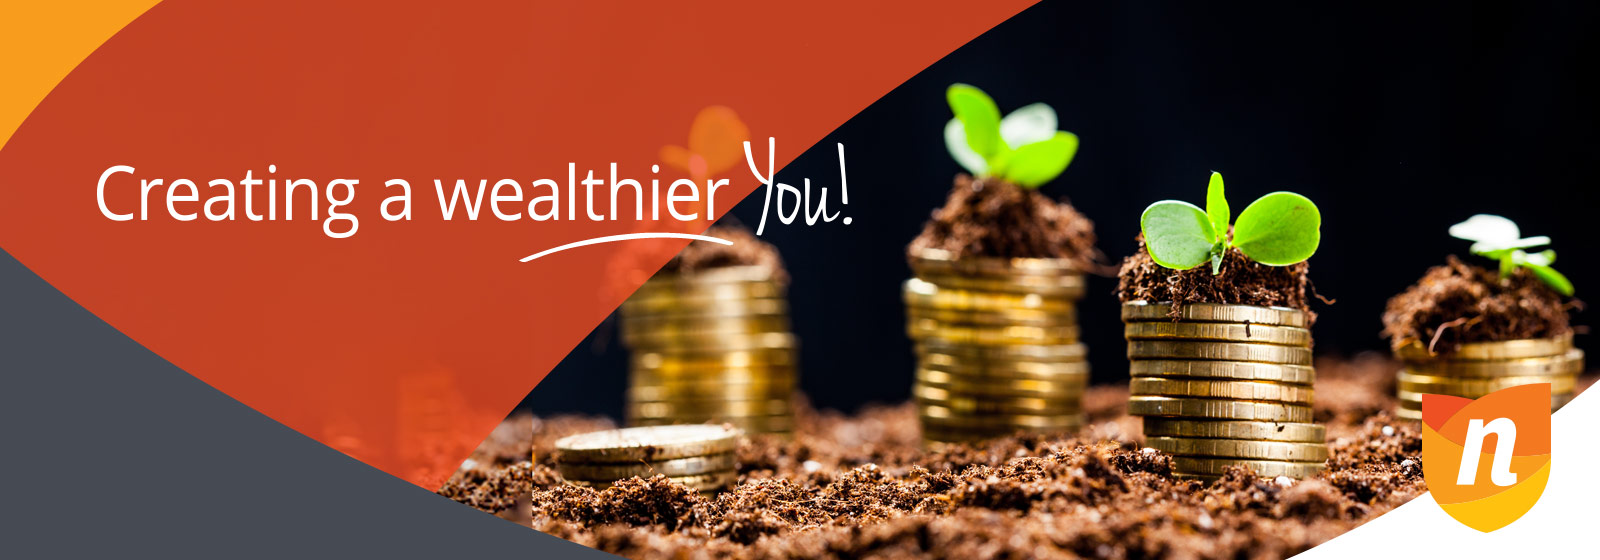 Creating a wealthier you!